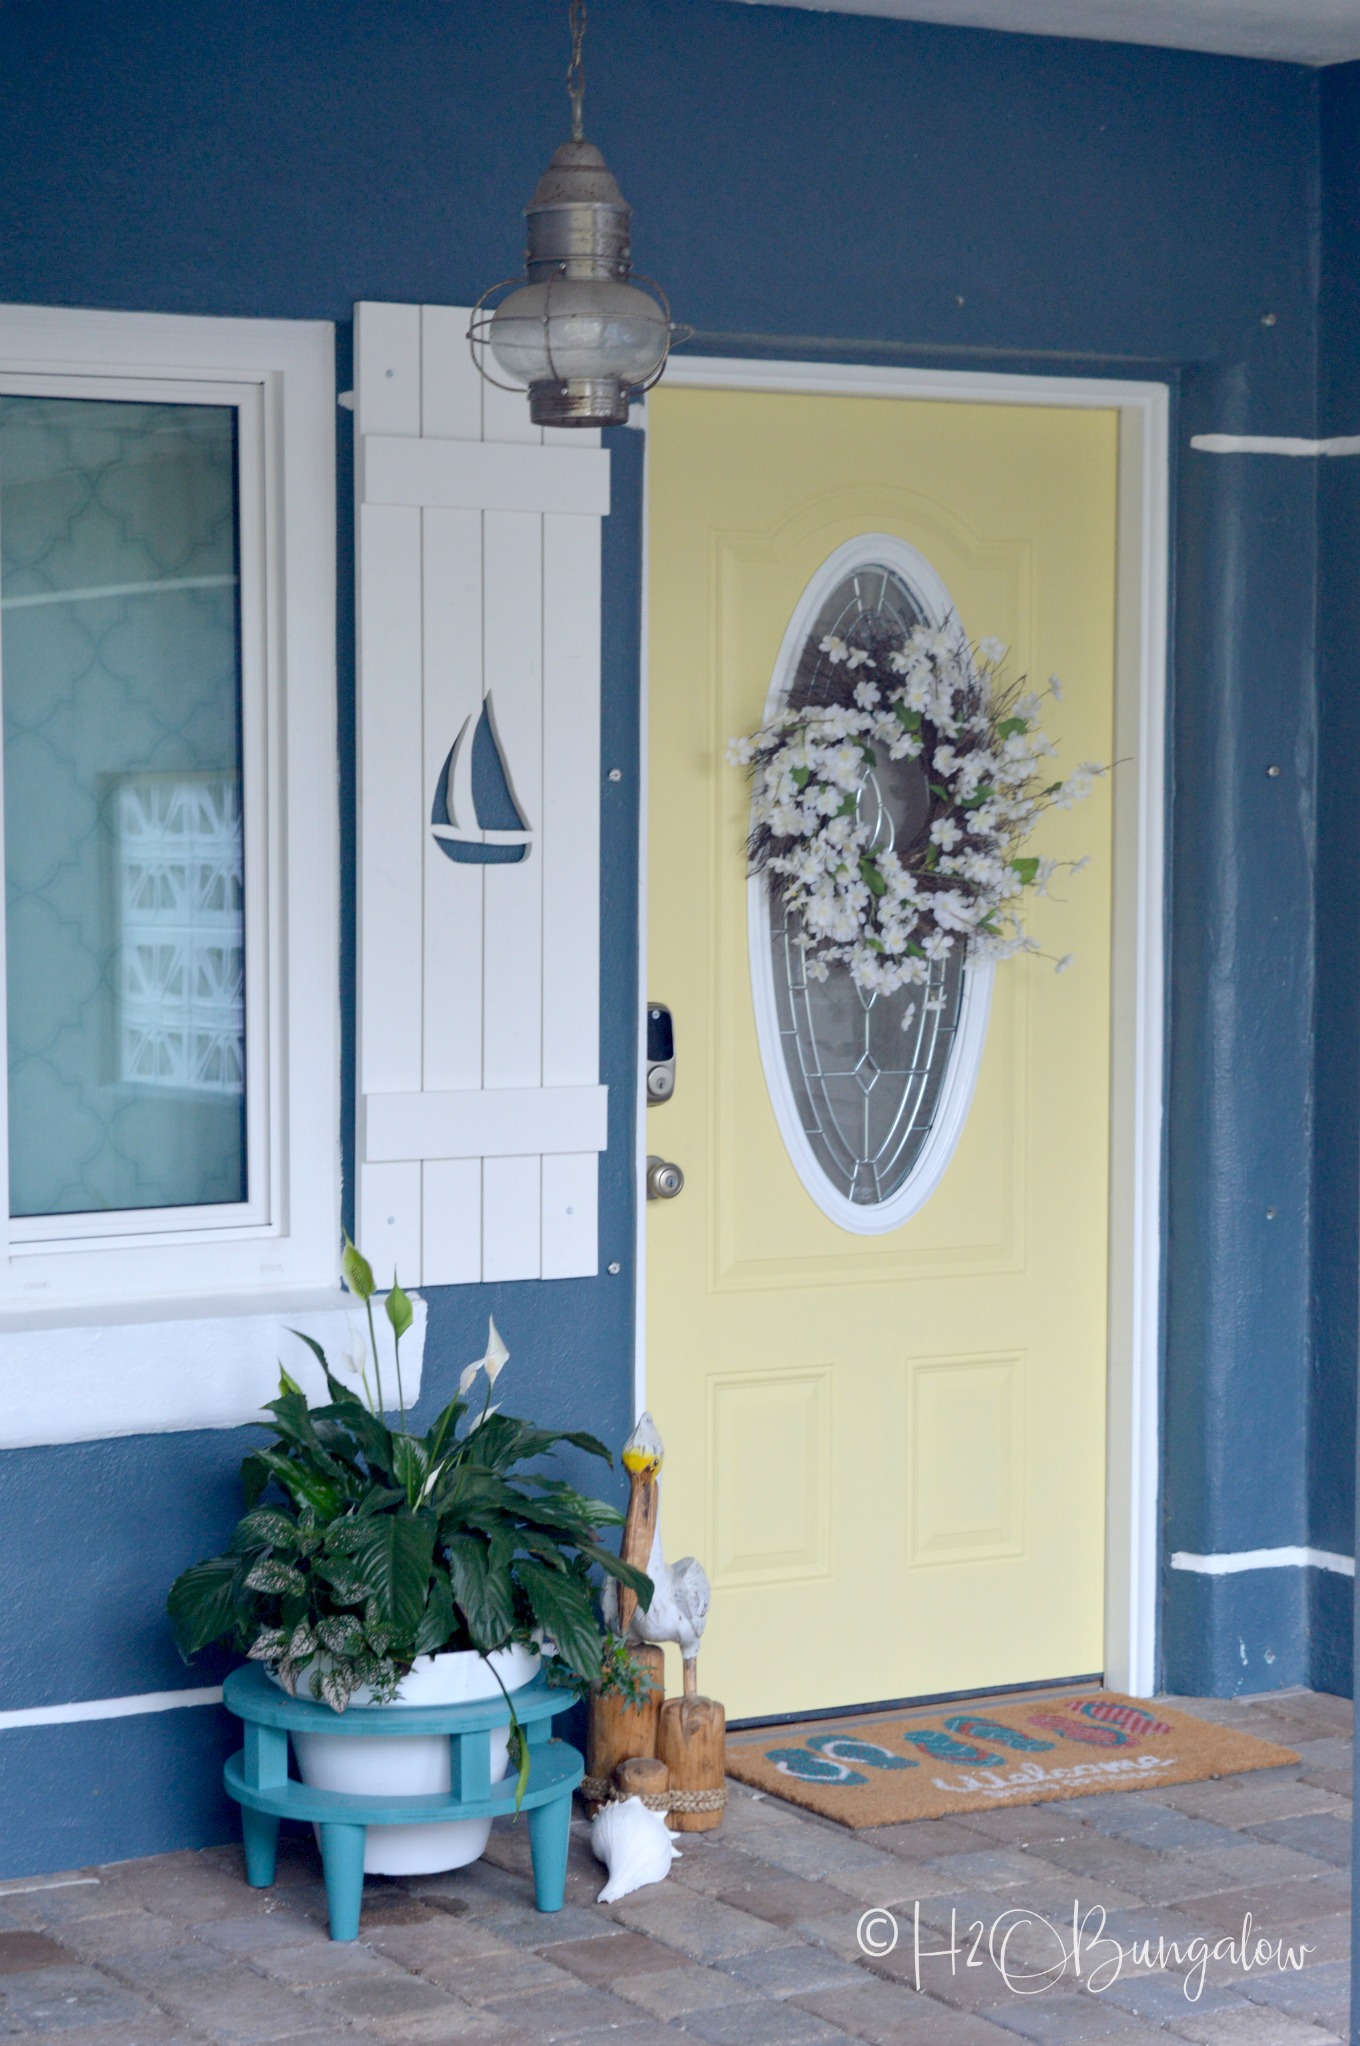 How To Make Diy Shutters With Sailboat Cutouts H2obungalow